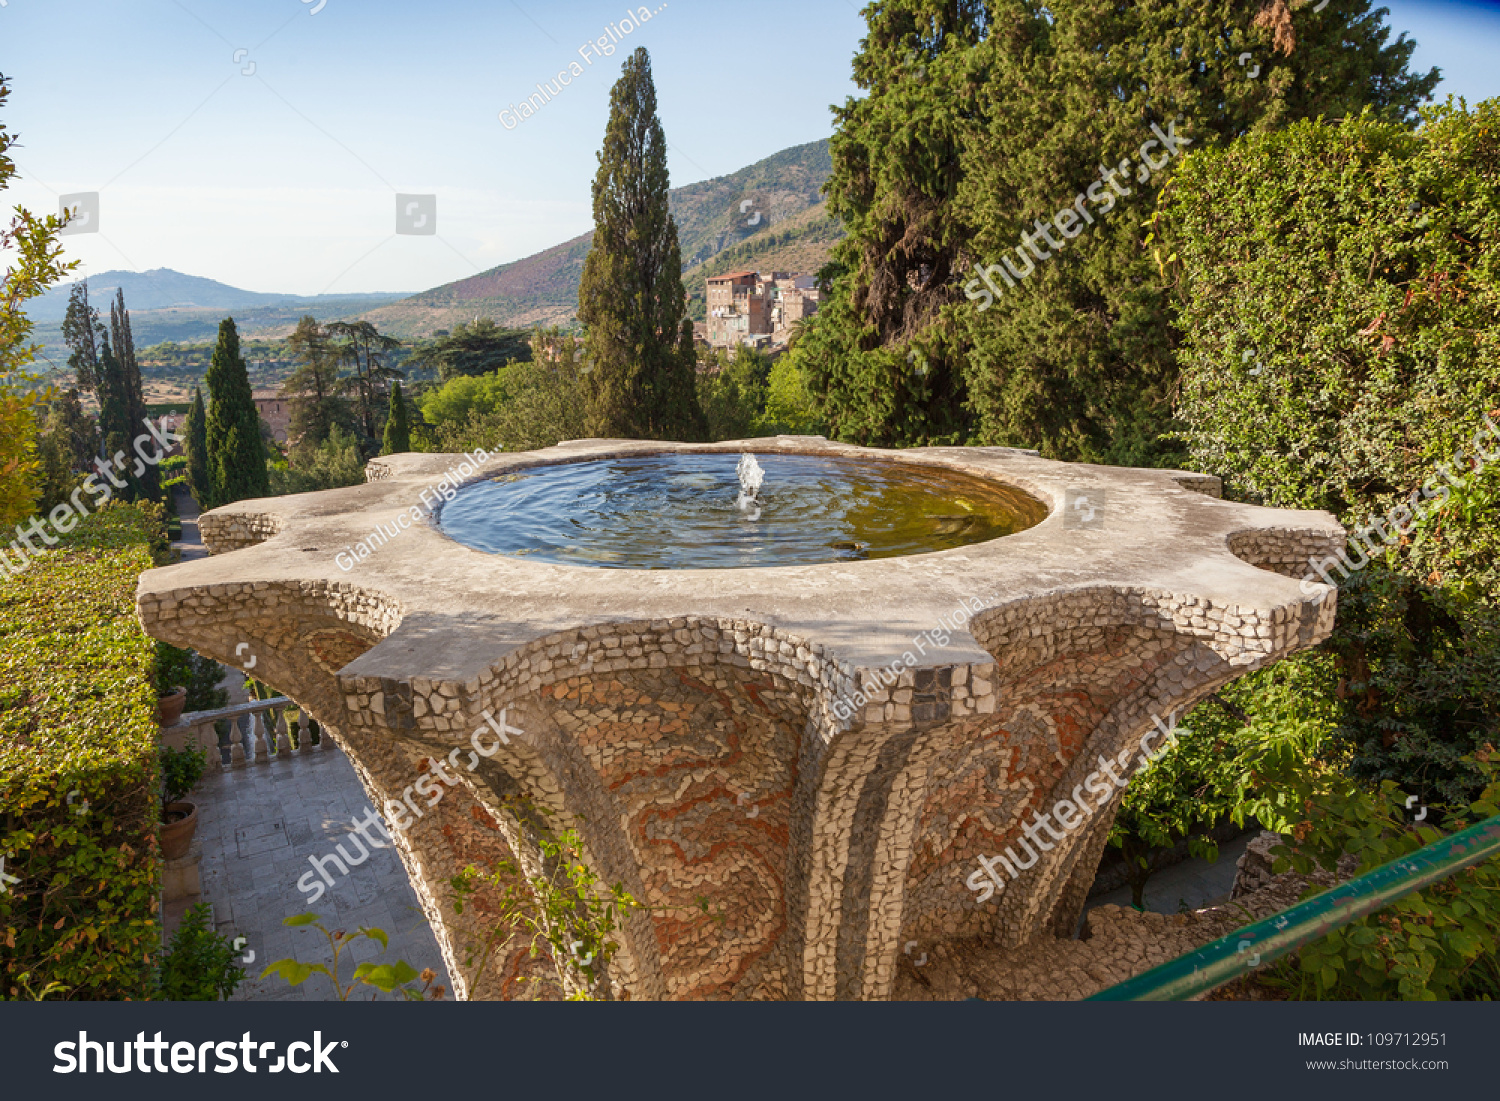 Villa D Este Fountain Garden Tivoli Italy Rome Stock Photo (Royalty ...